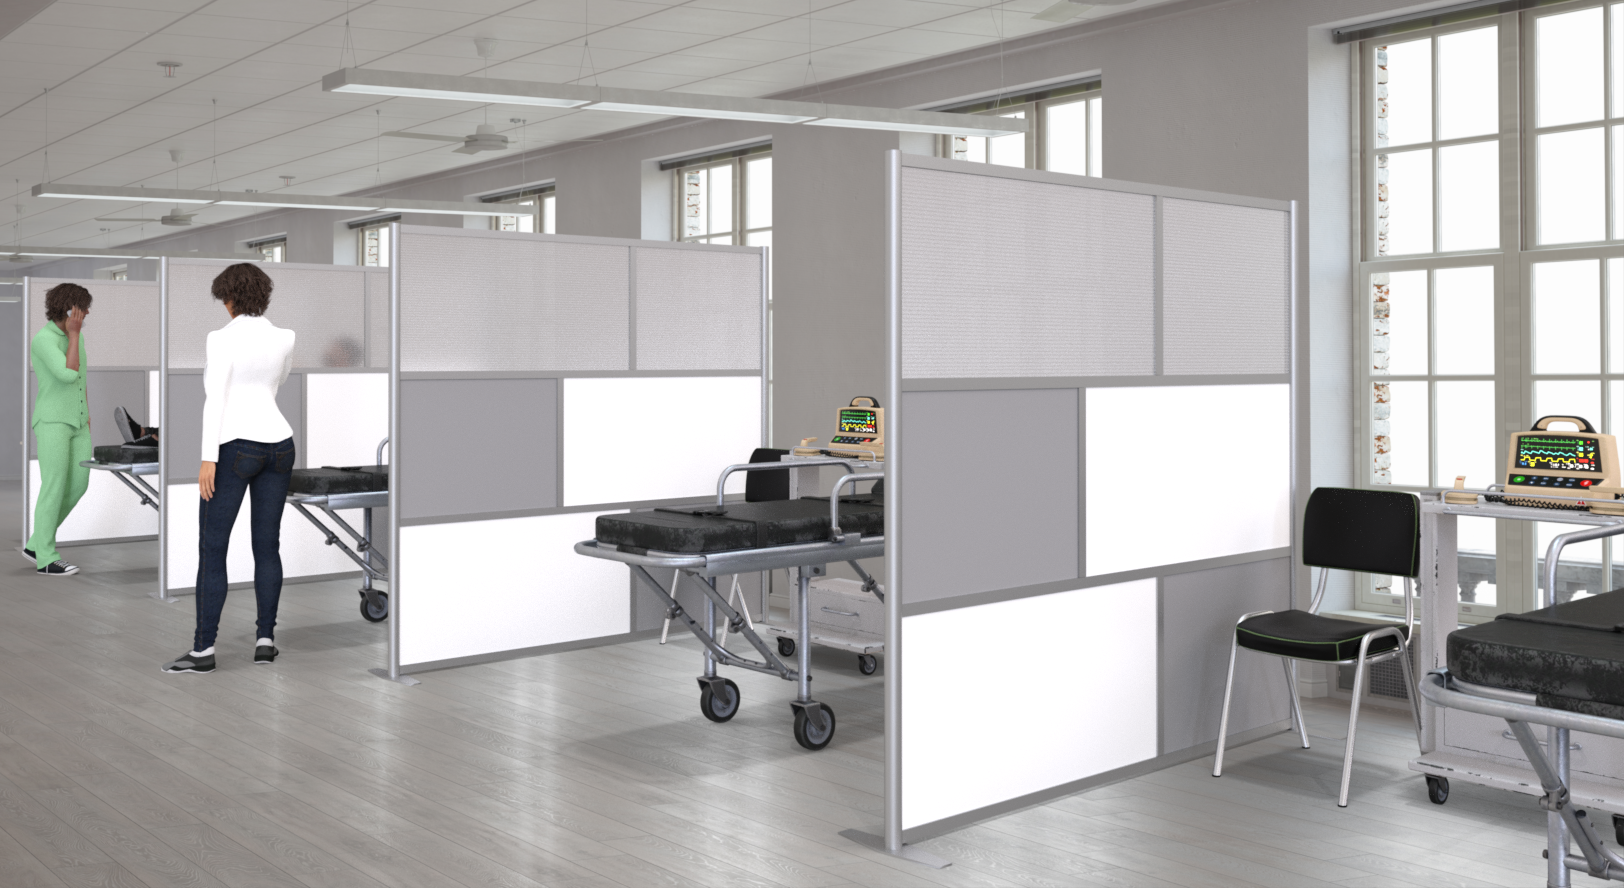 Portable Temporary Emergency Hospital Room Partition Walls